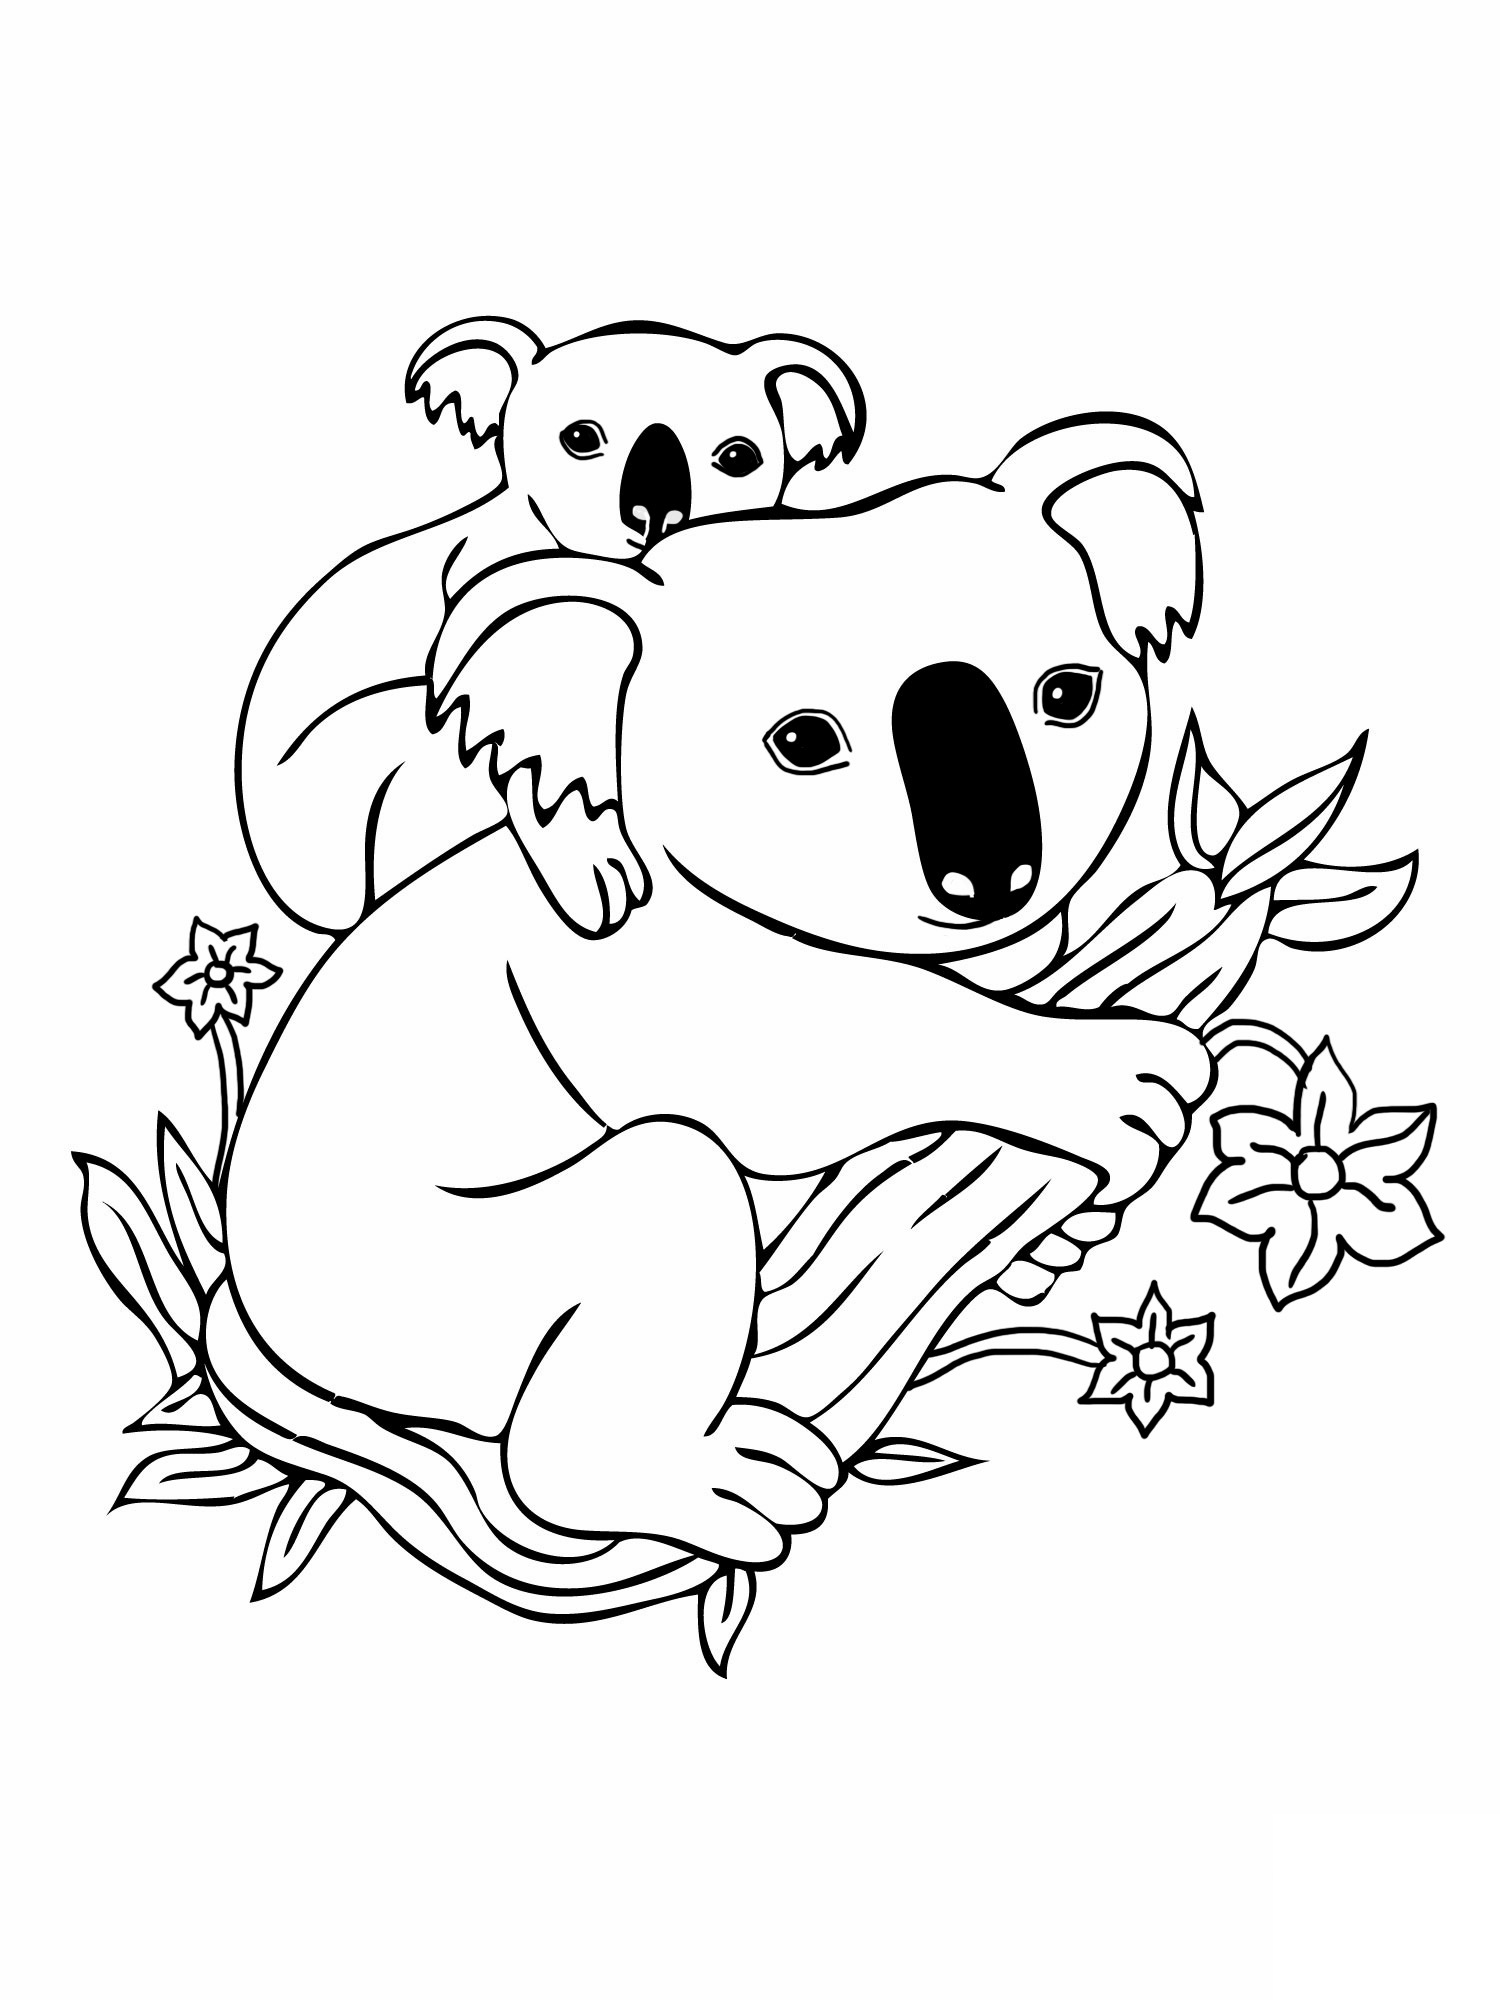 coloring page koala baby koala drawing at getdrawings free download coloring koala page